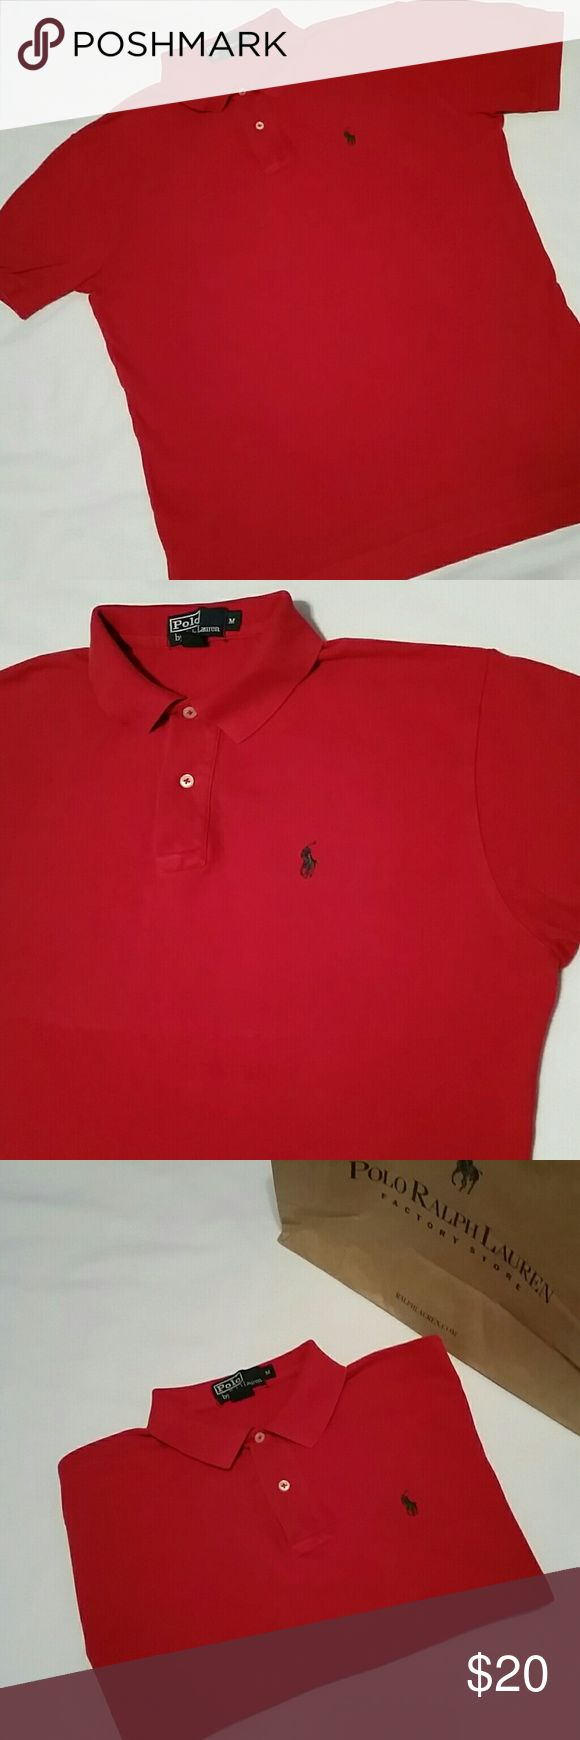 RL POLO final price  In excellent used condition. No damage, no rips, no stains.  Classic fit  Beautiful rich red. Color fade 9 of 10  Premium colors like red never go on sale at Macy's or Ralph Lauren. Polo by Ralph Lauren Shirts Polos